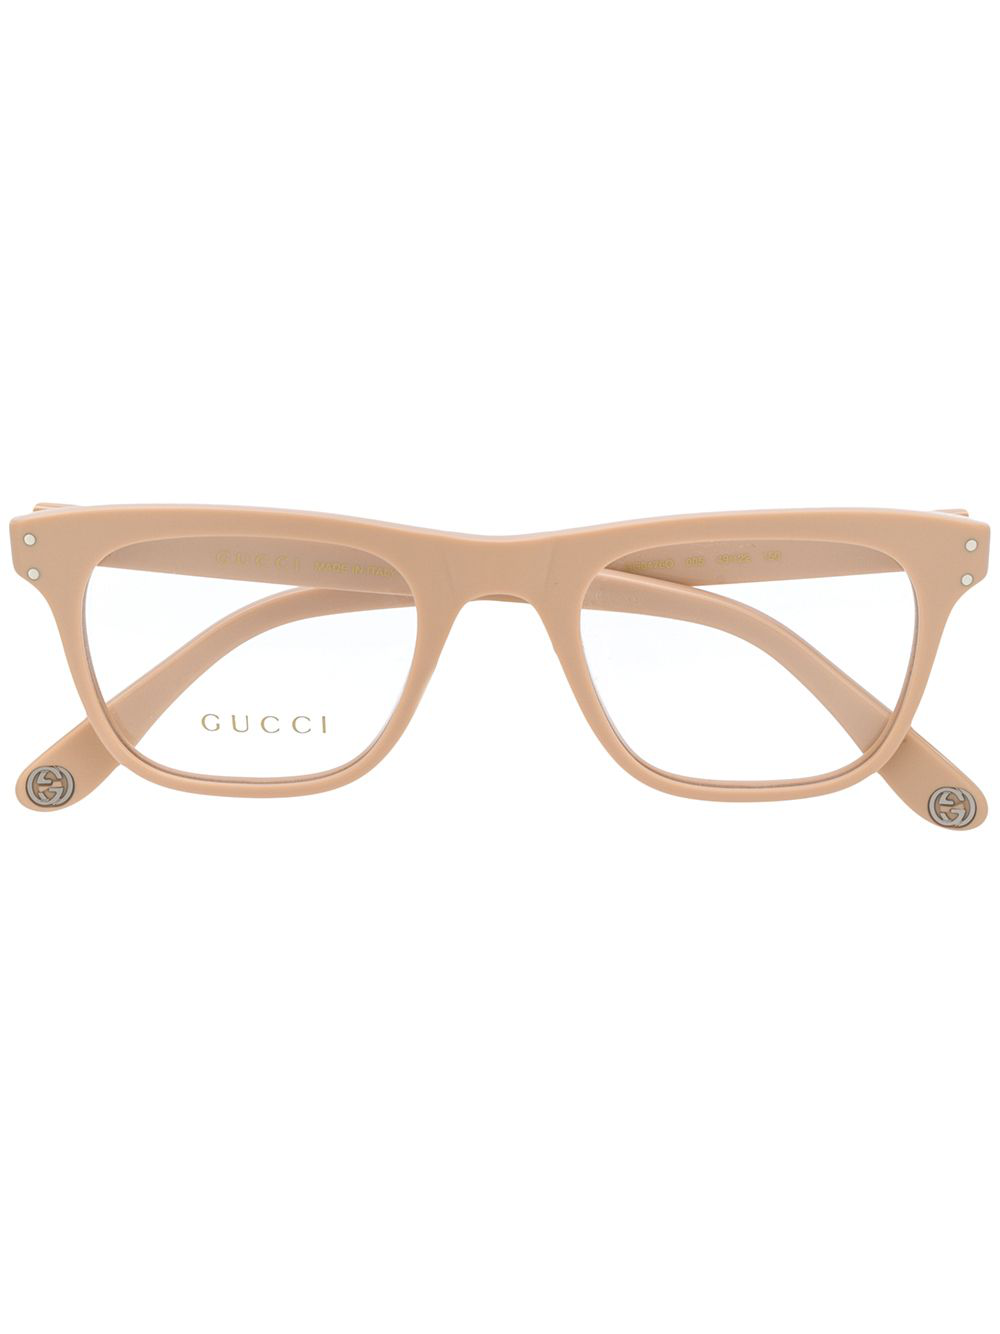 5a305fa6d9a Gucci Eyewear Classic Mass-Shape Glasses - Neutrals